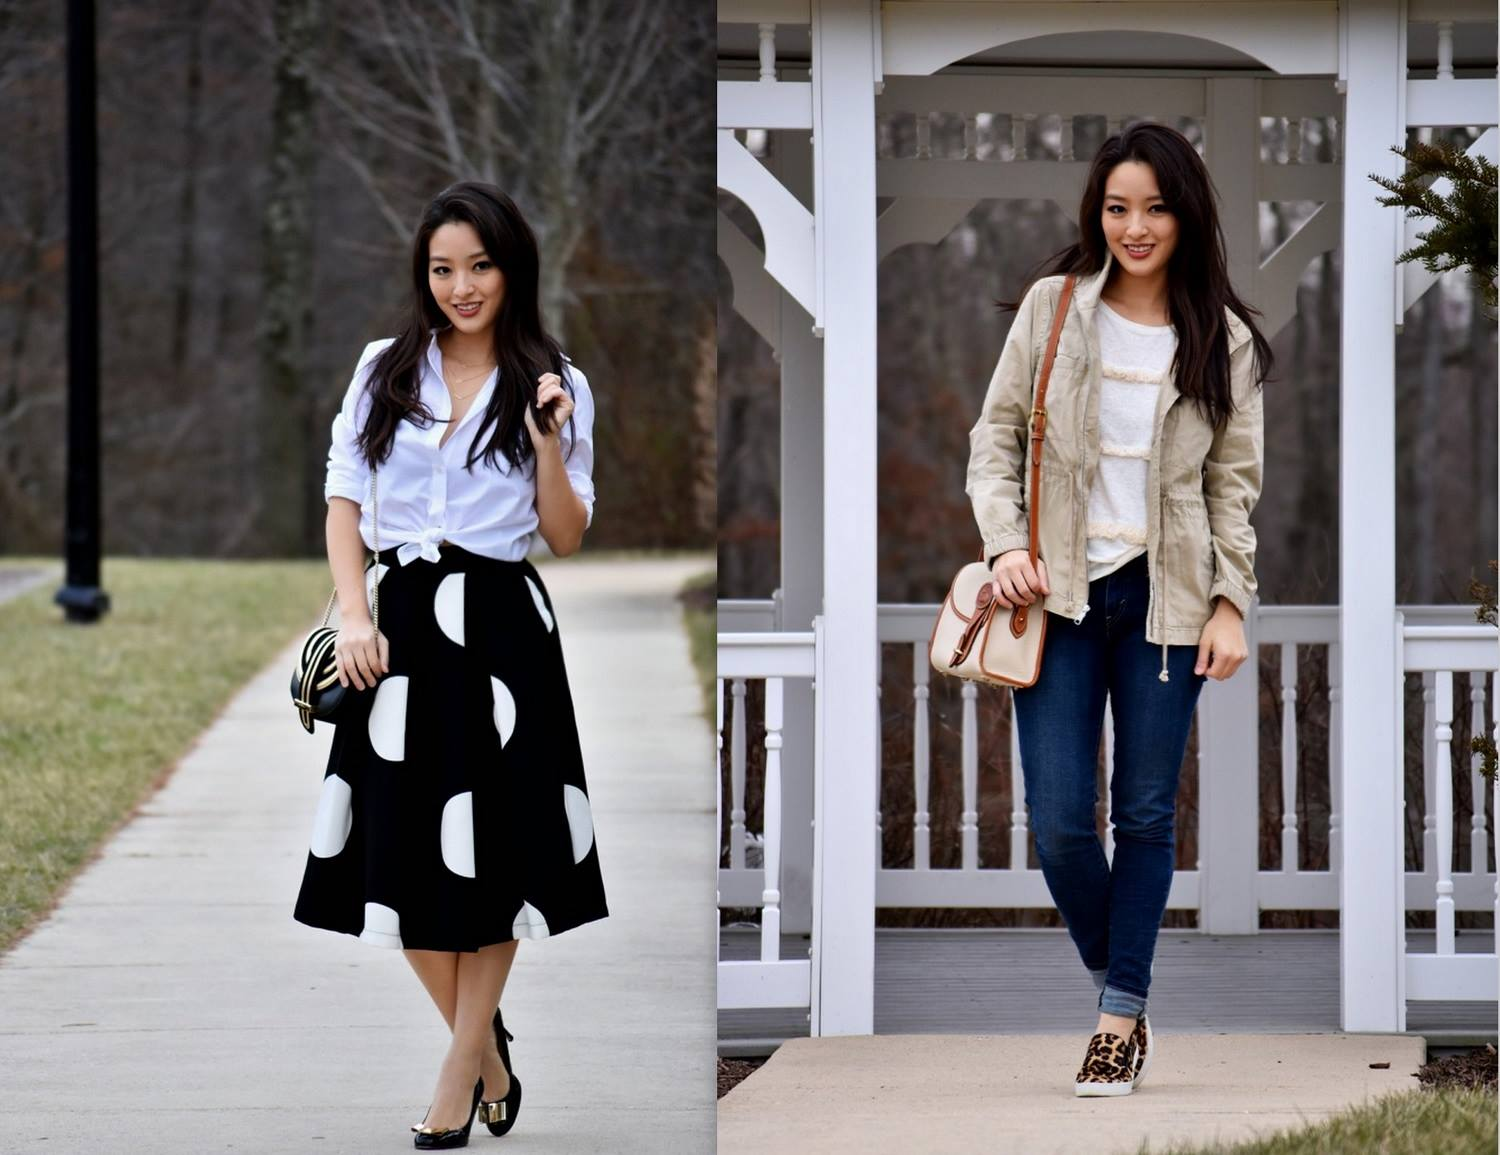 Blogger interview: meet multi talented and highly creative fashion blogger Kimberly Kong of Sensible Stylista